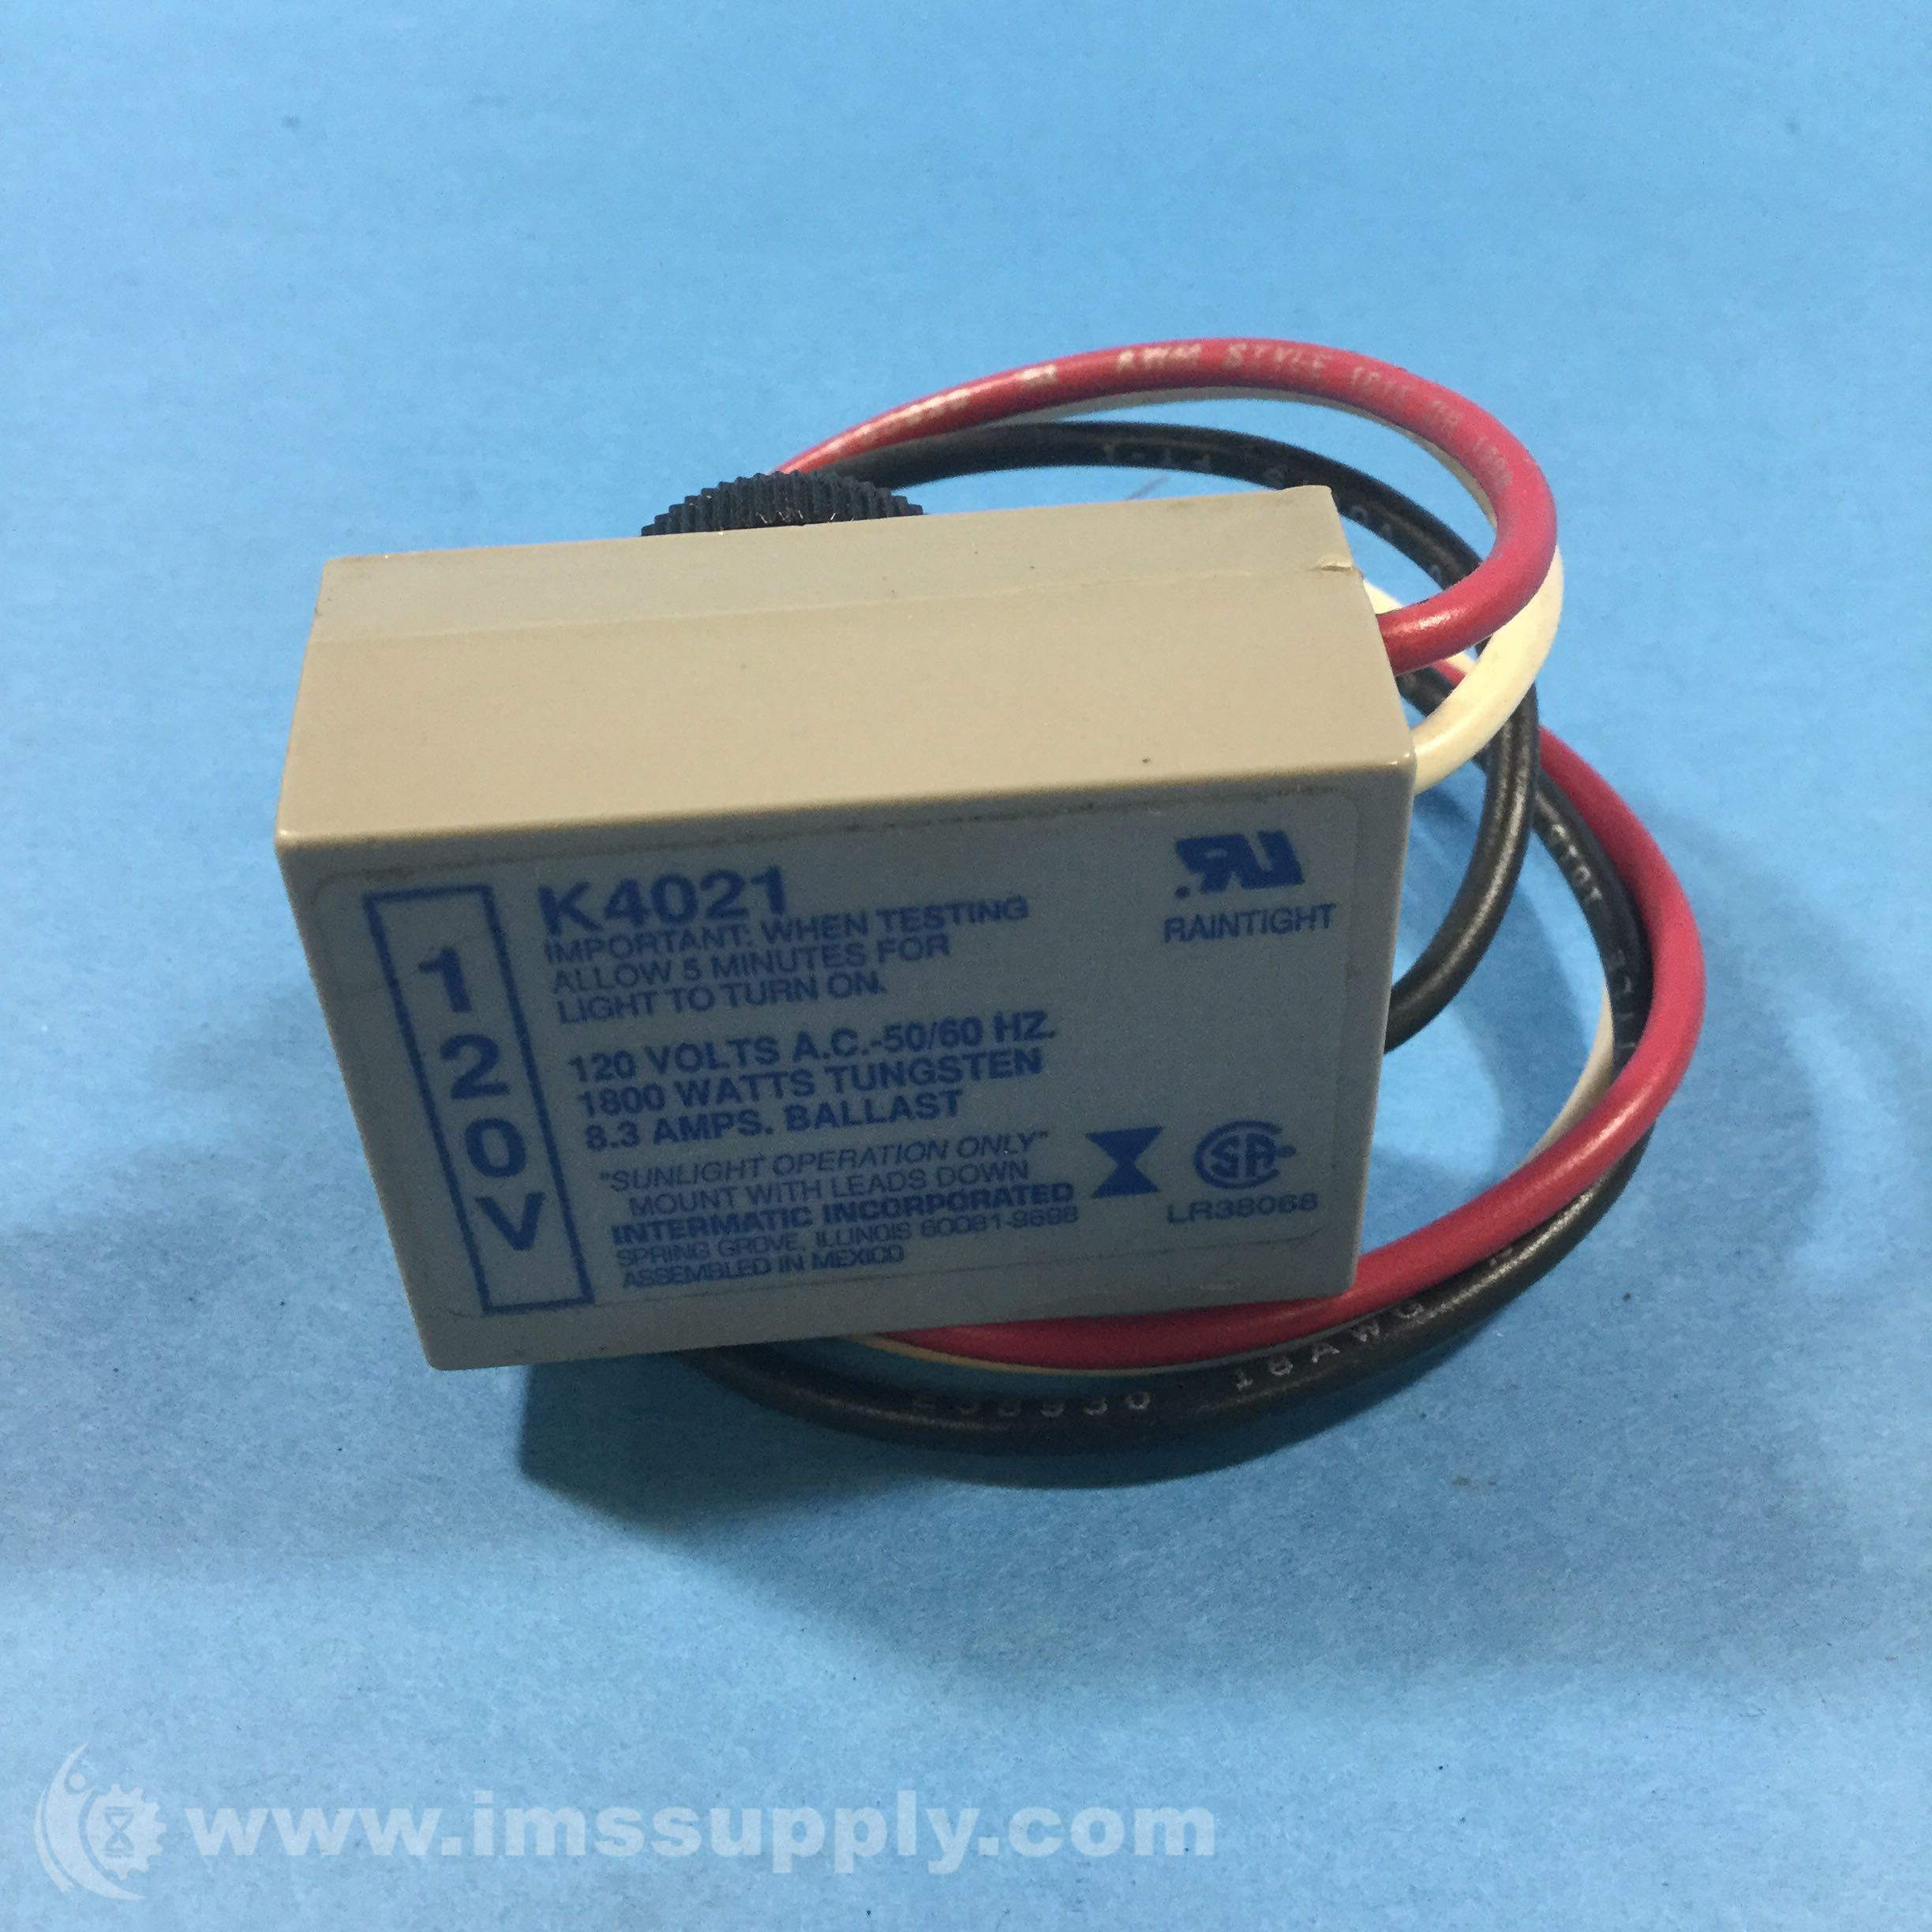 120 Volt Photoelectric Sensor Intermatic Switch Wiring Diagram Ims Supply 2448x2448